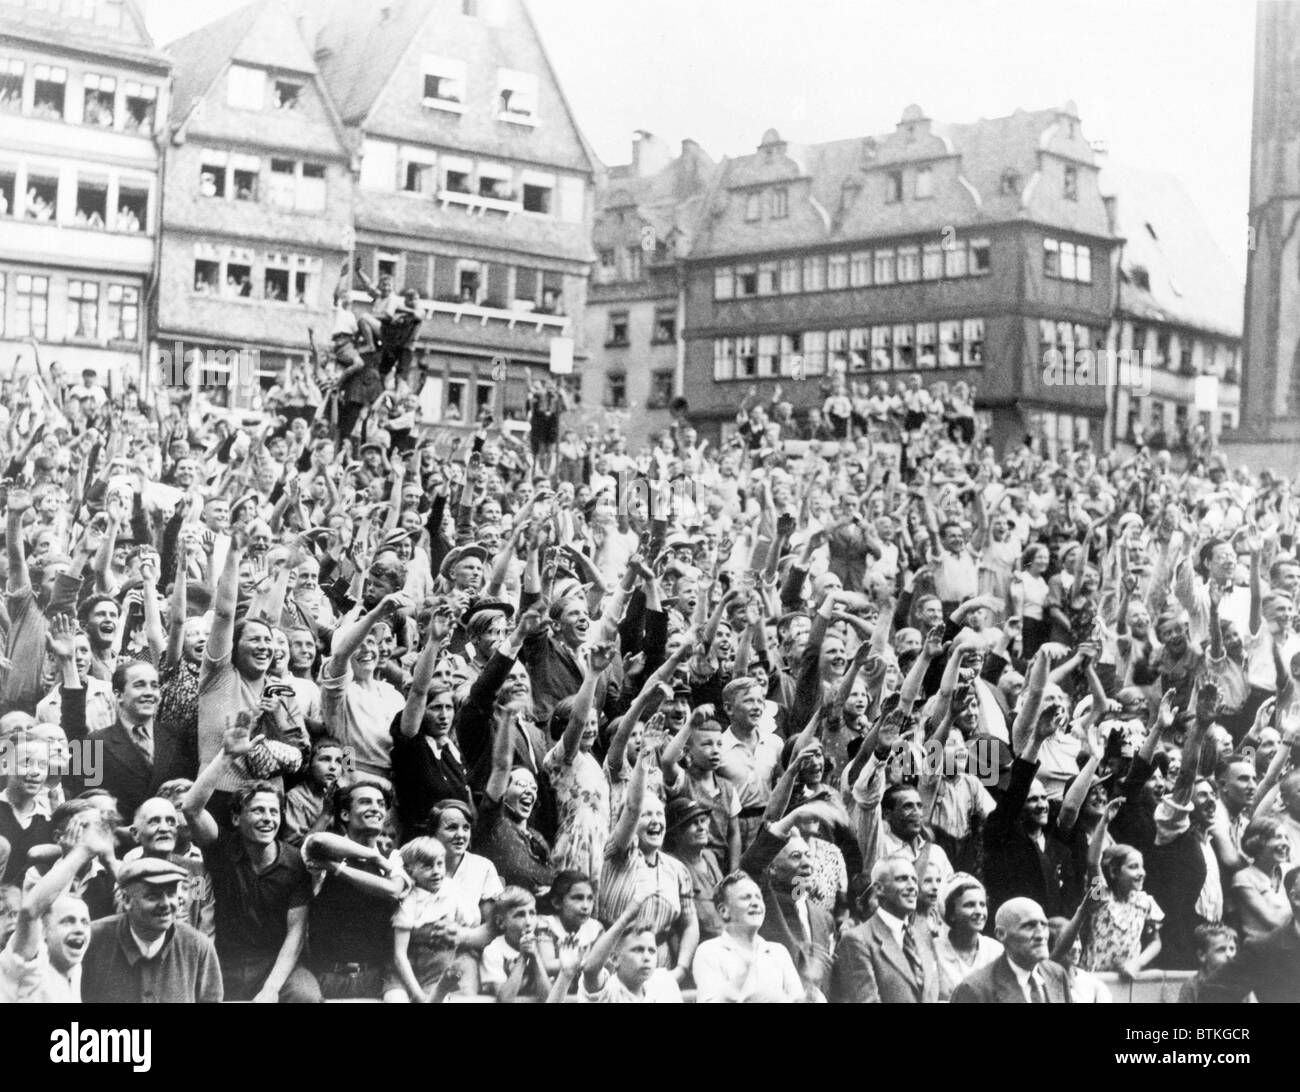 German admirers cheering Max Schmeling with a Nazi salute at City Hall in Frankfort, Germany. On June 19, 1936, - Stock Image